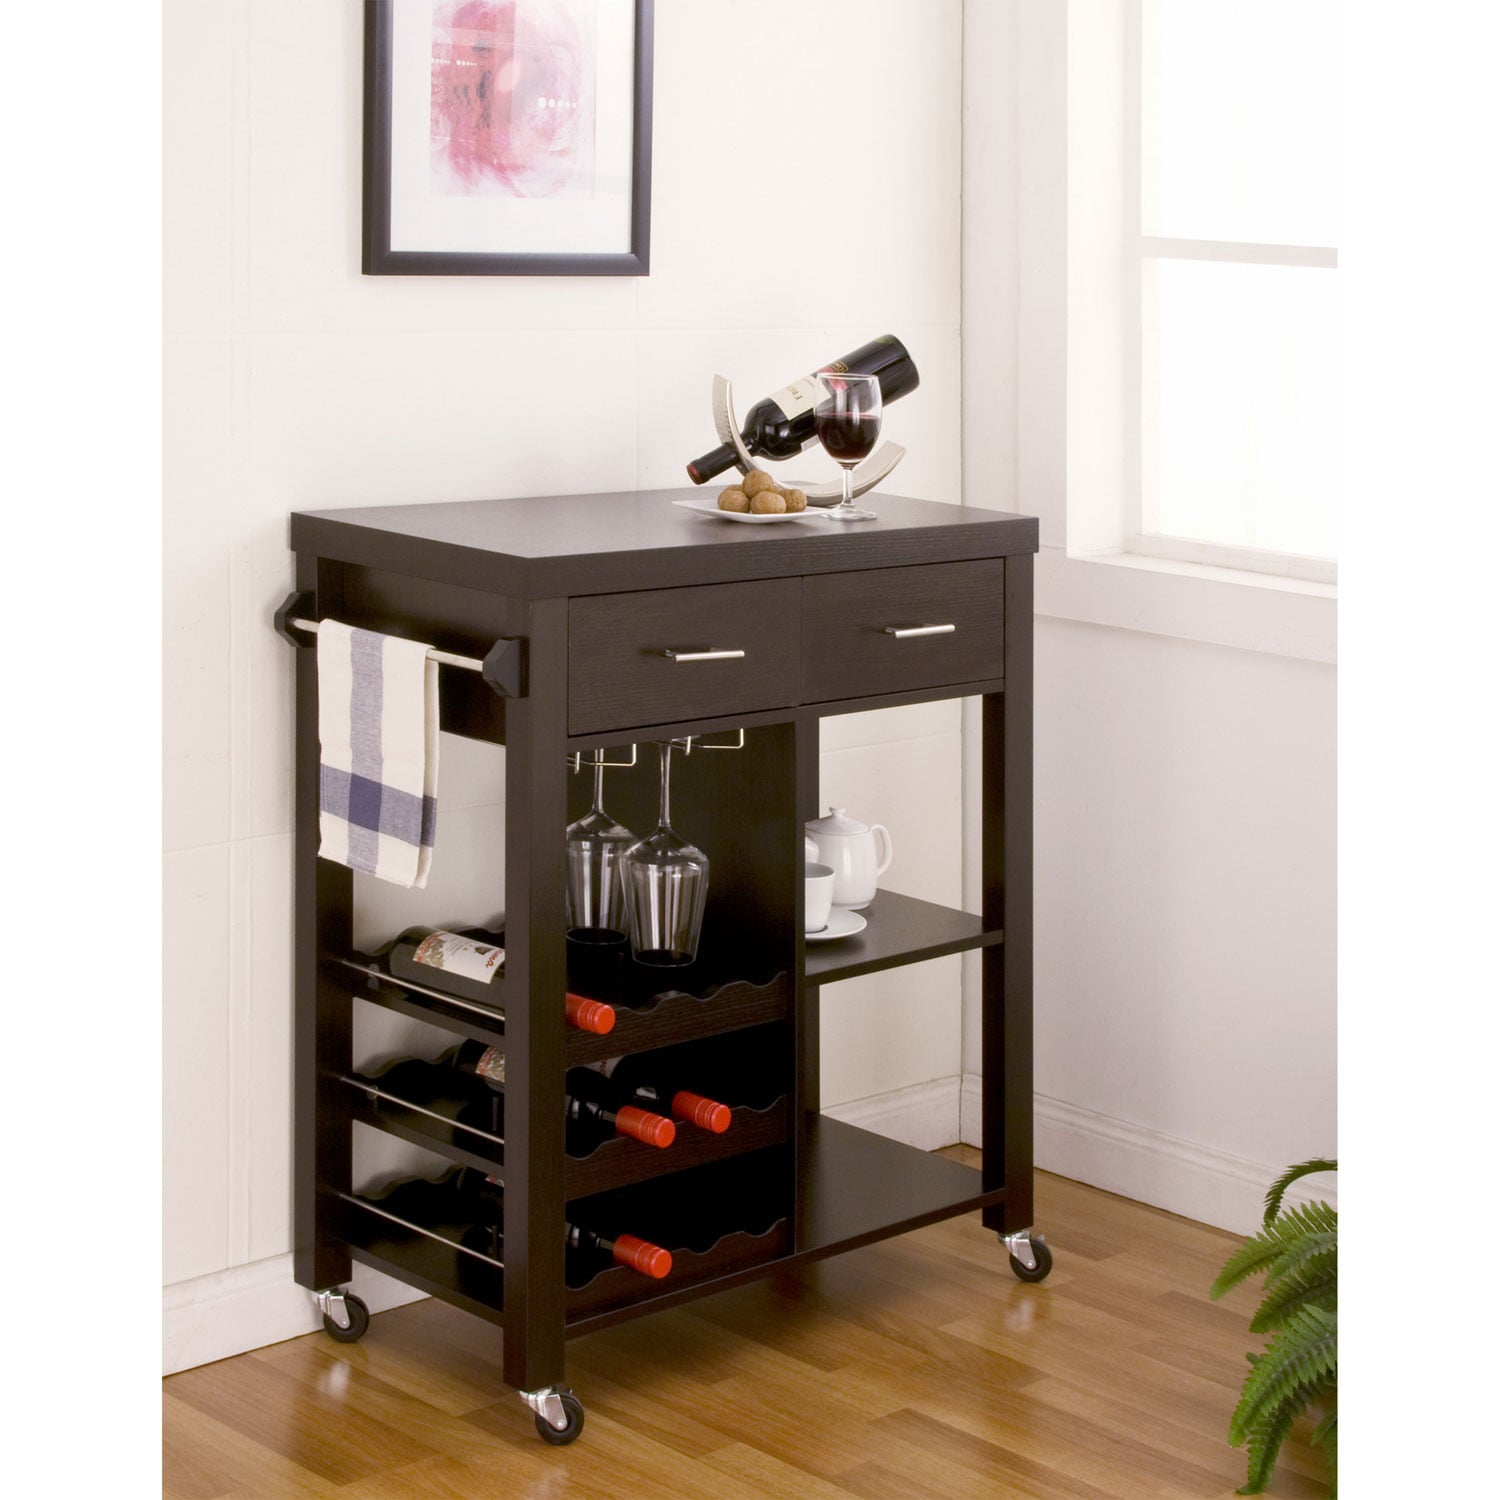 Furniture of America Stewardee Contemporary Mobile Kitchen ...